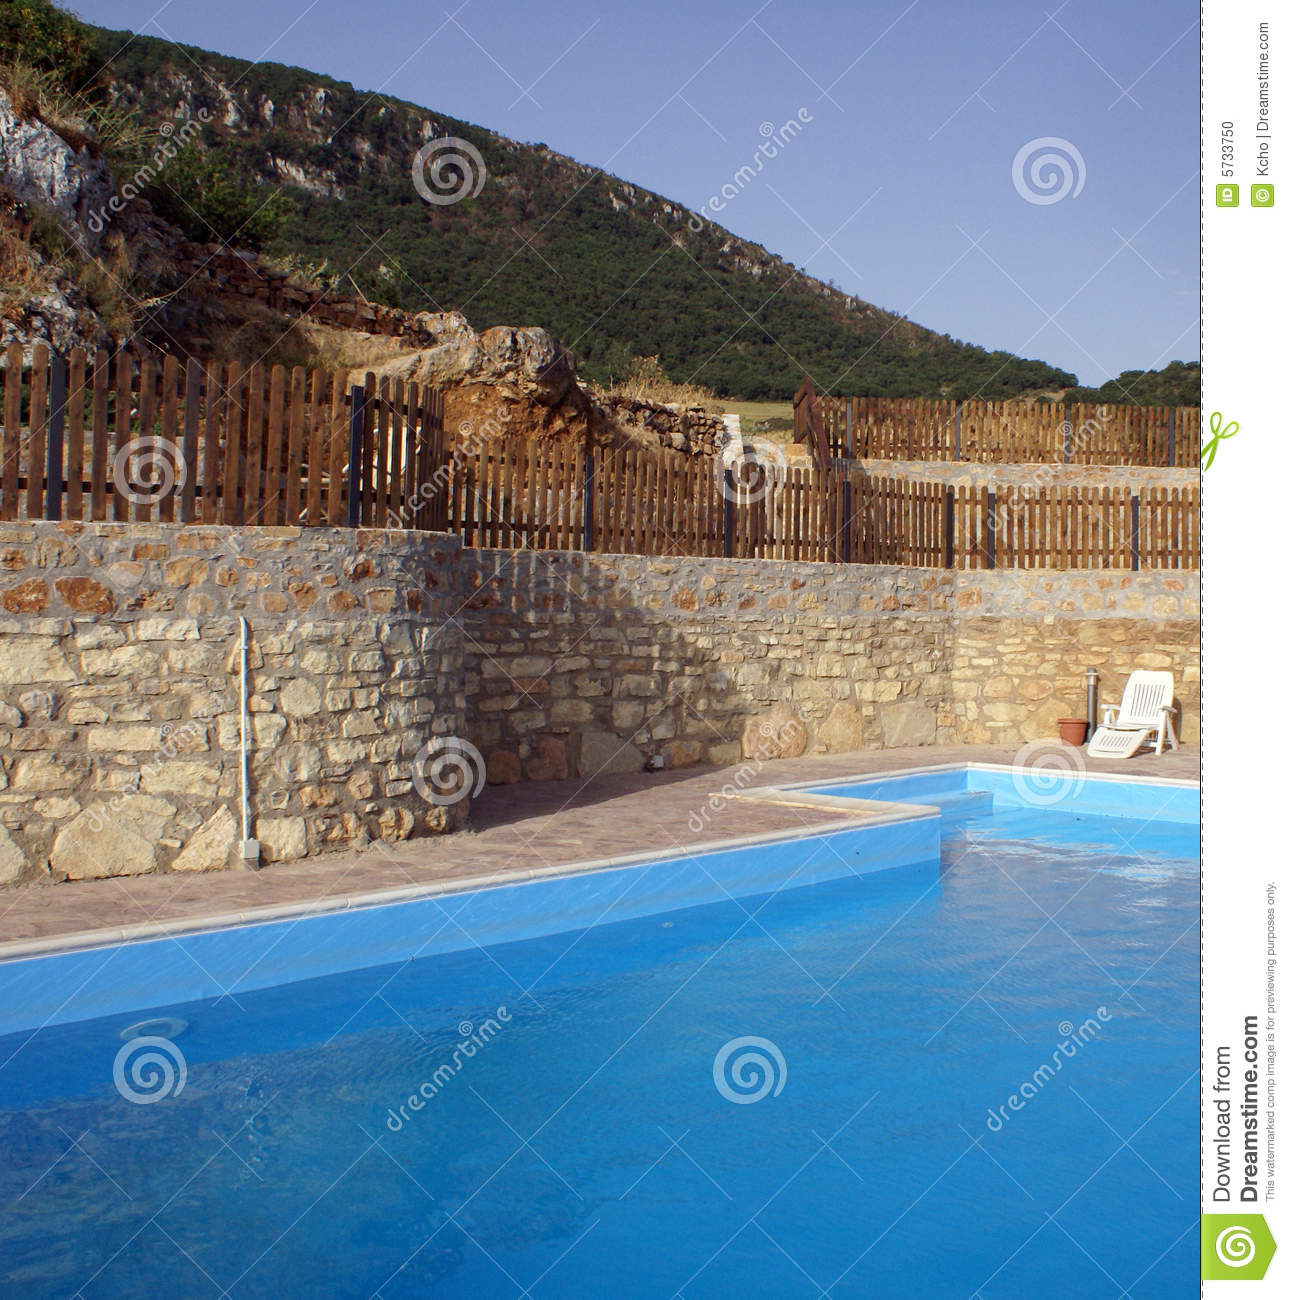 Pool Deck In Countryside Stock Image